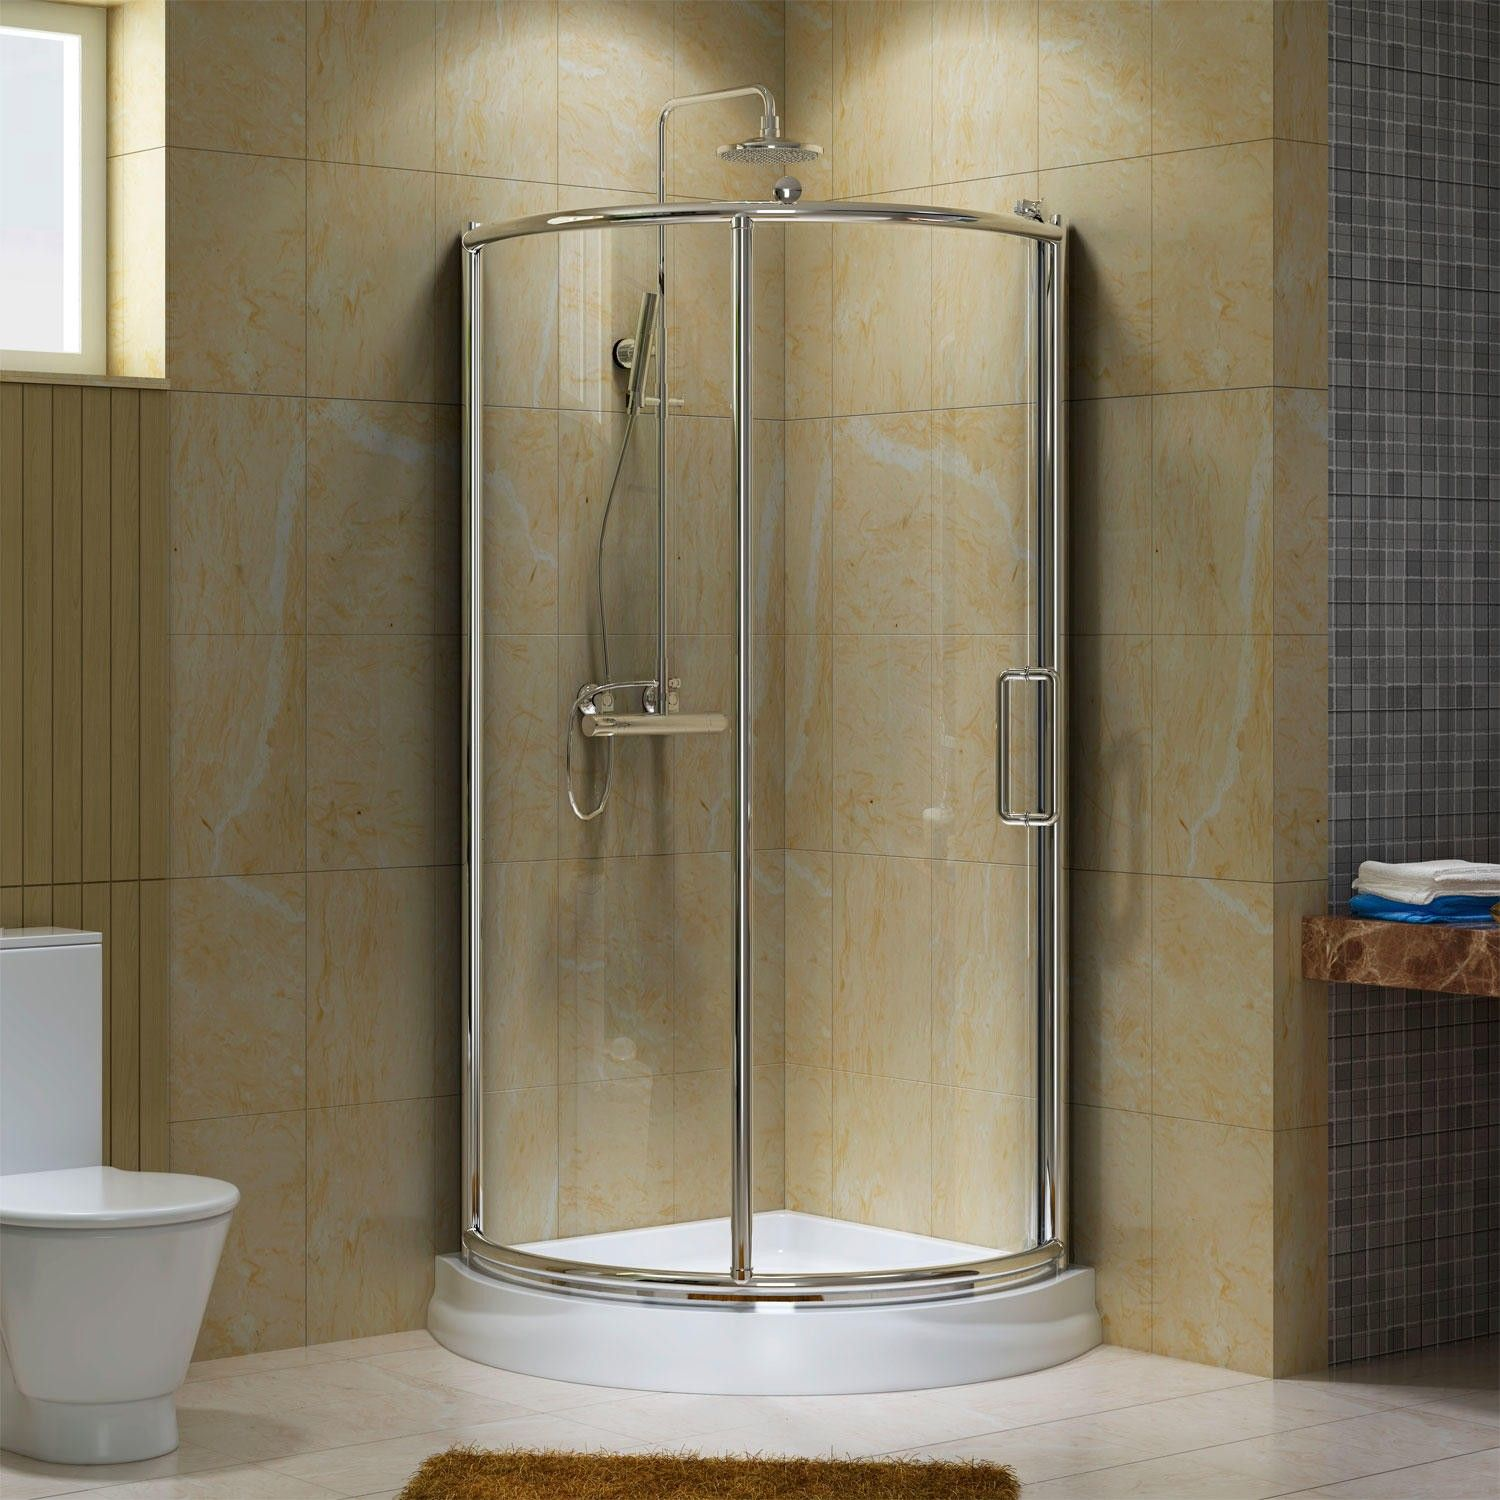 40 X 40 Webber Corner Shower Enclosure Corner Shower Corner